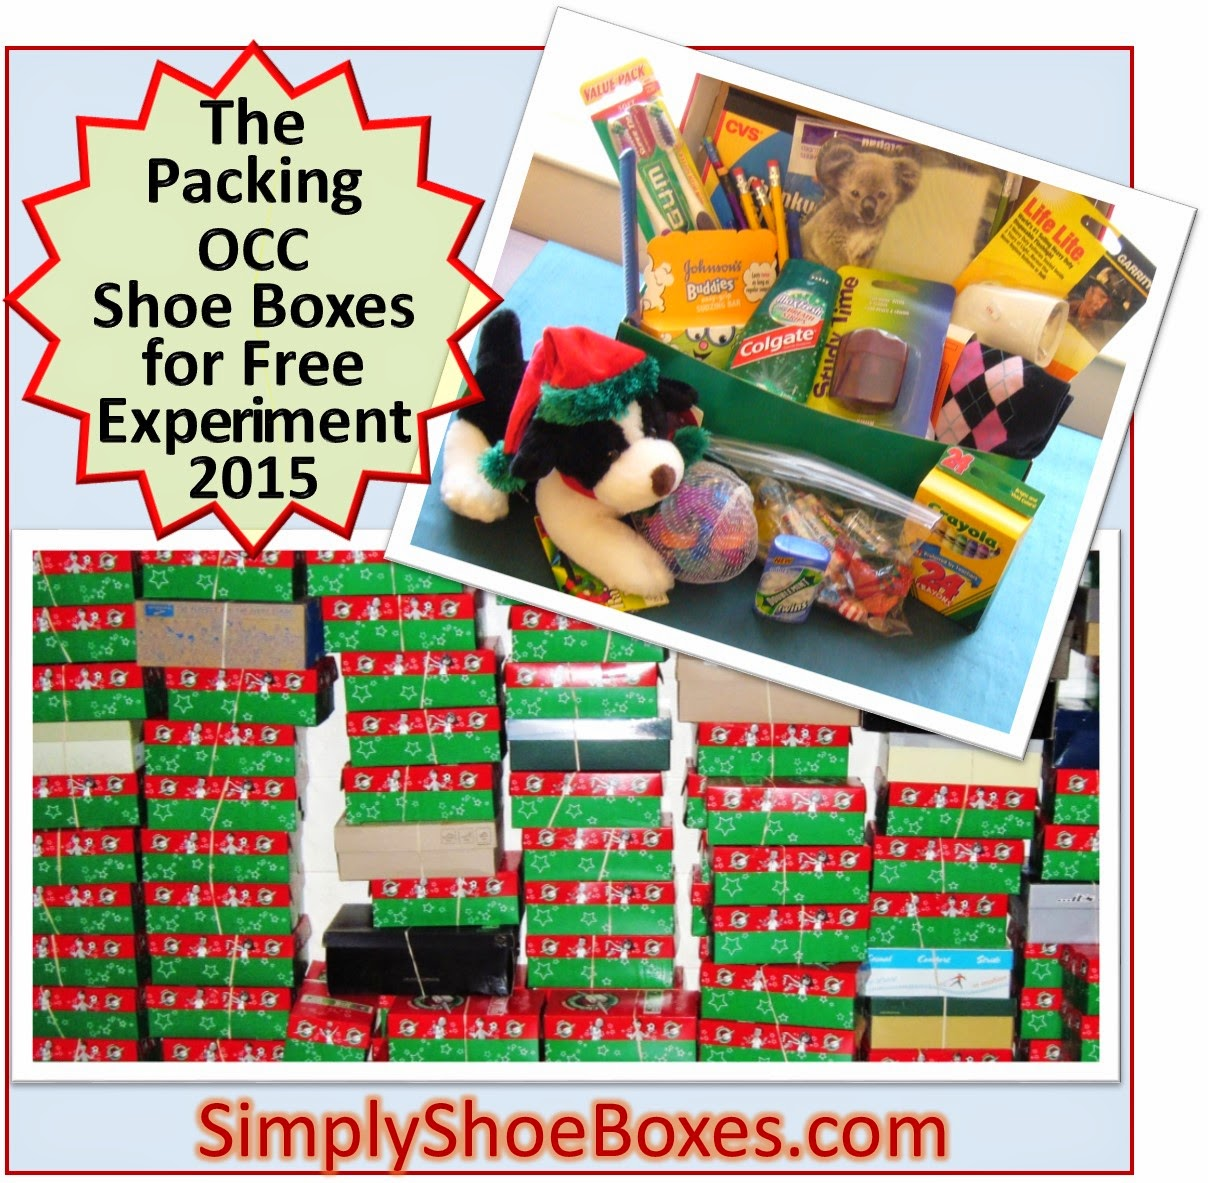 Packing OCC Shoe Boxes for Free Experiment 2015